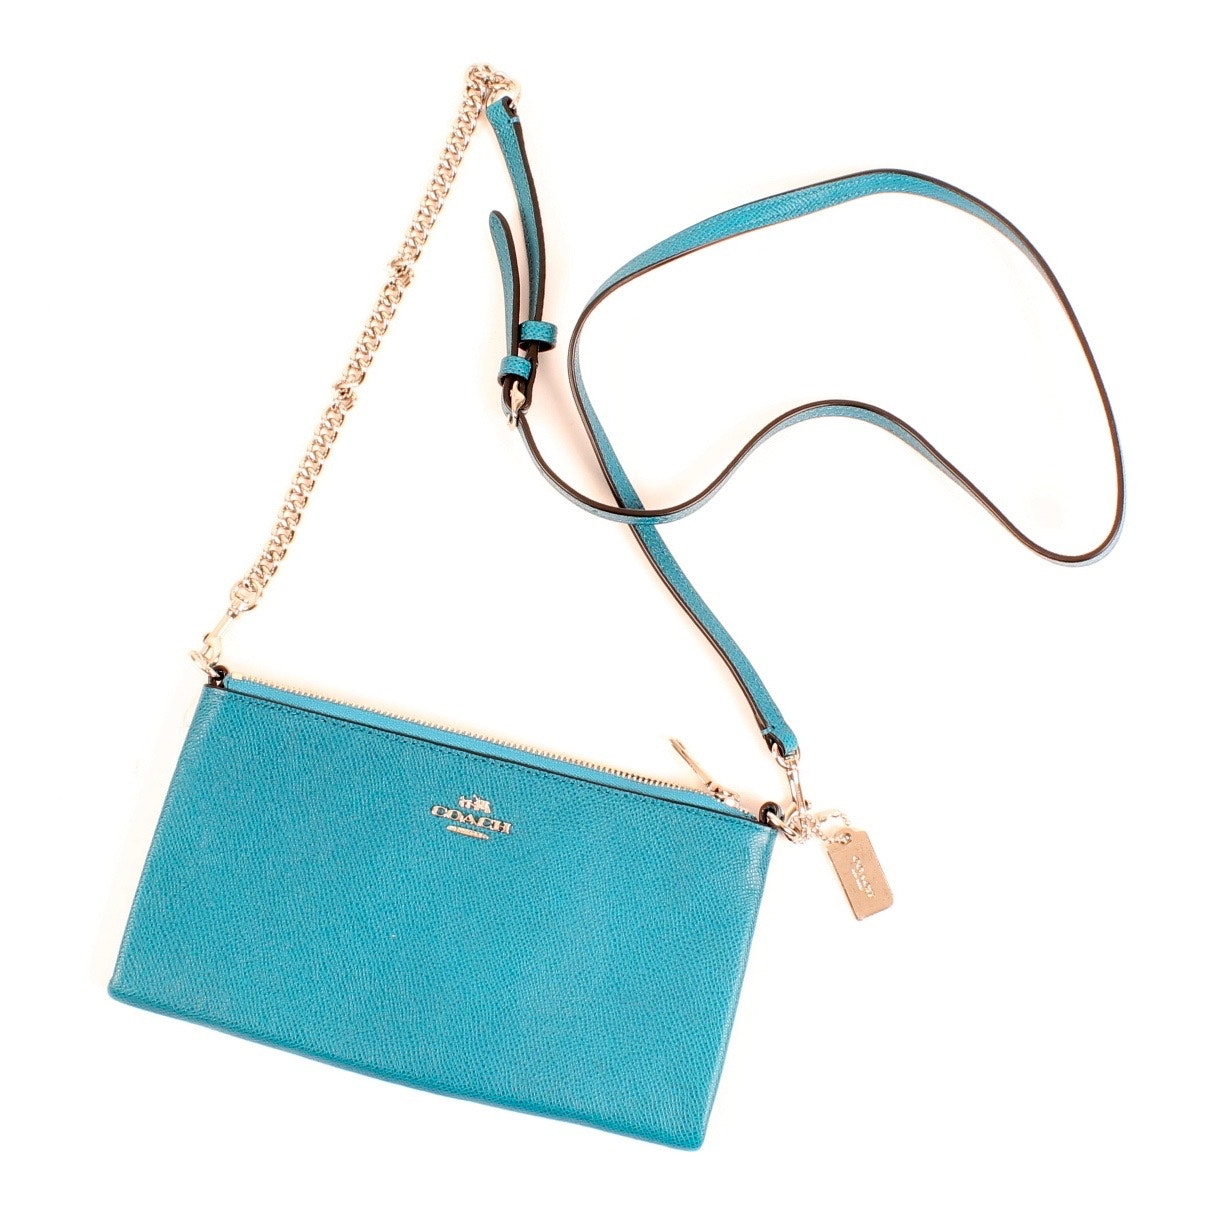 Coach Teal Leather Crossbody Purse